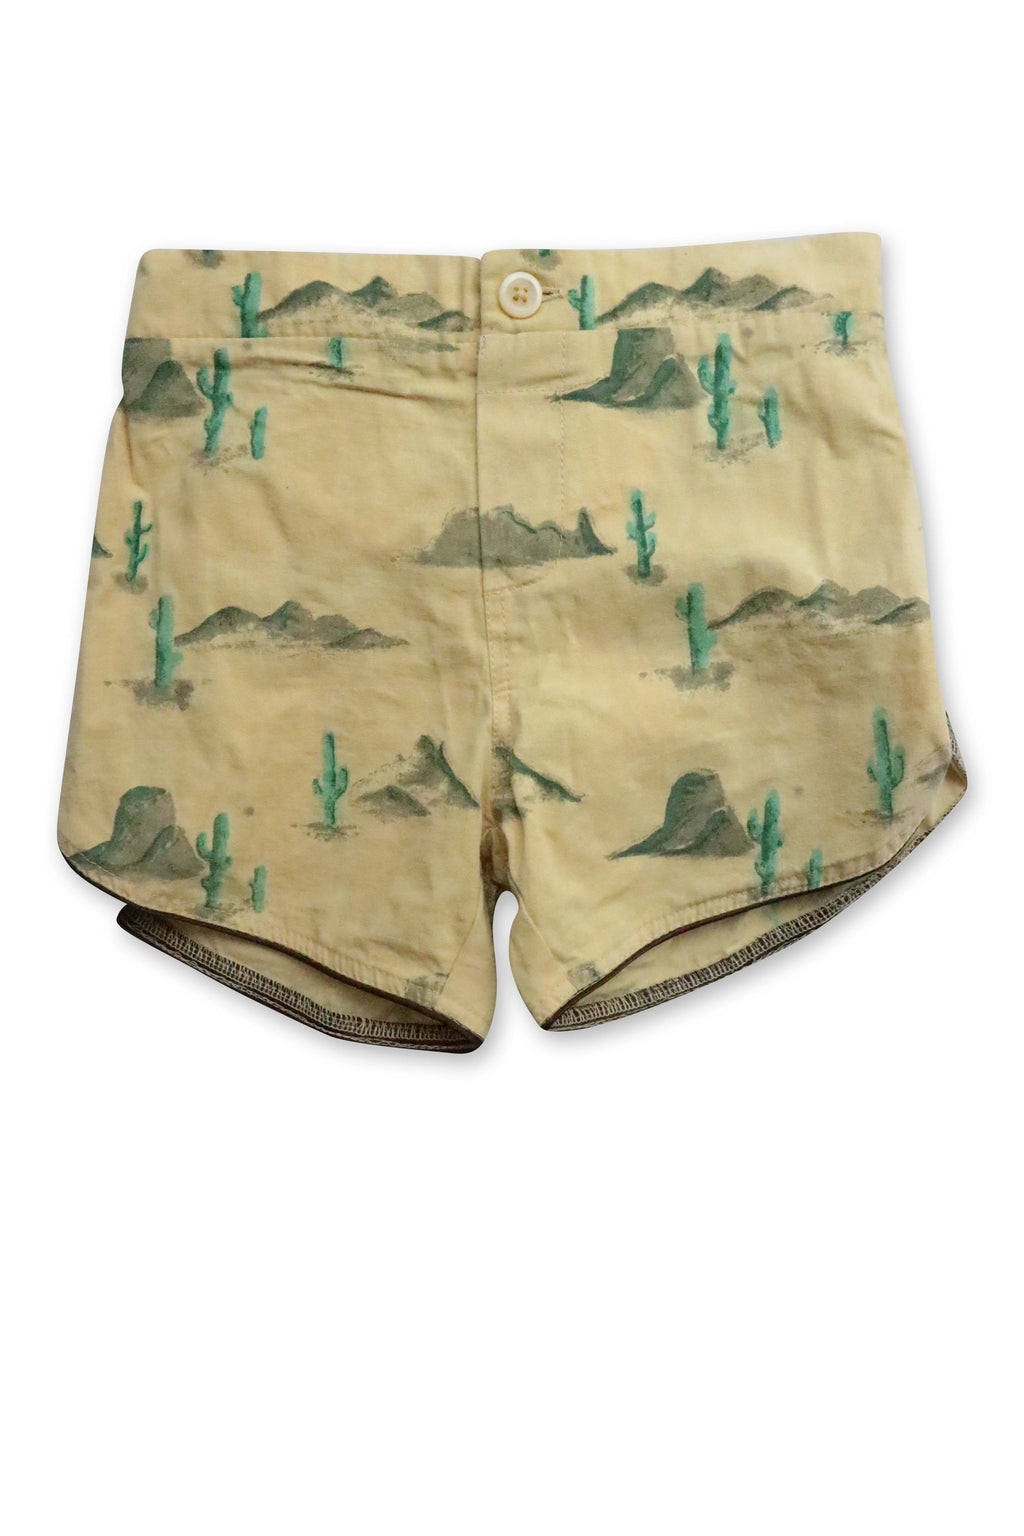 Children of the Tribe Shorts size 6